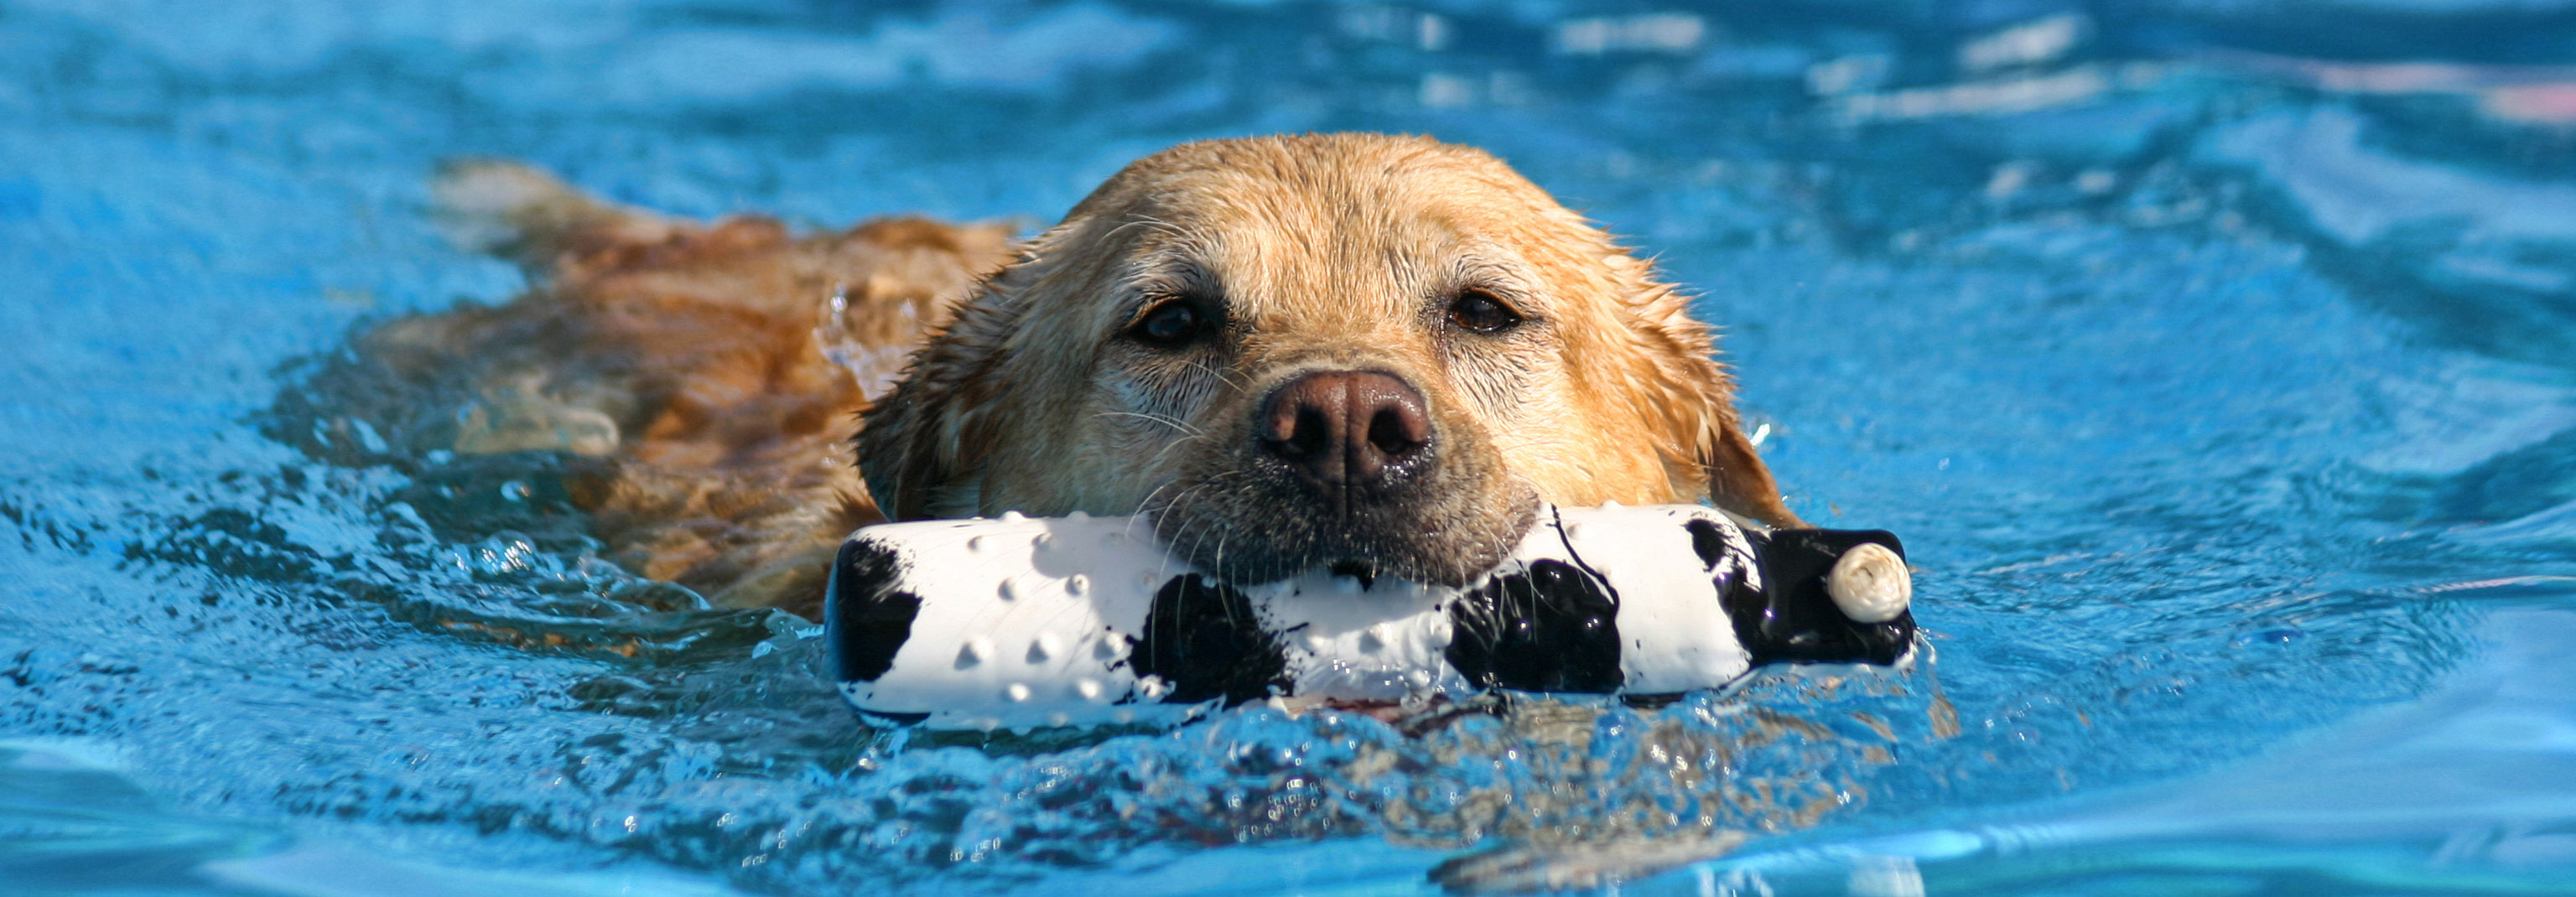 Doggy Paddle - Aquatic Center for Dogs